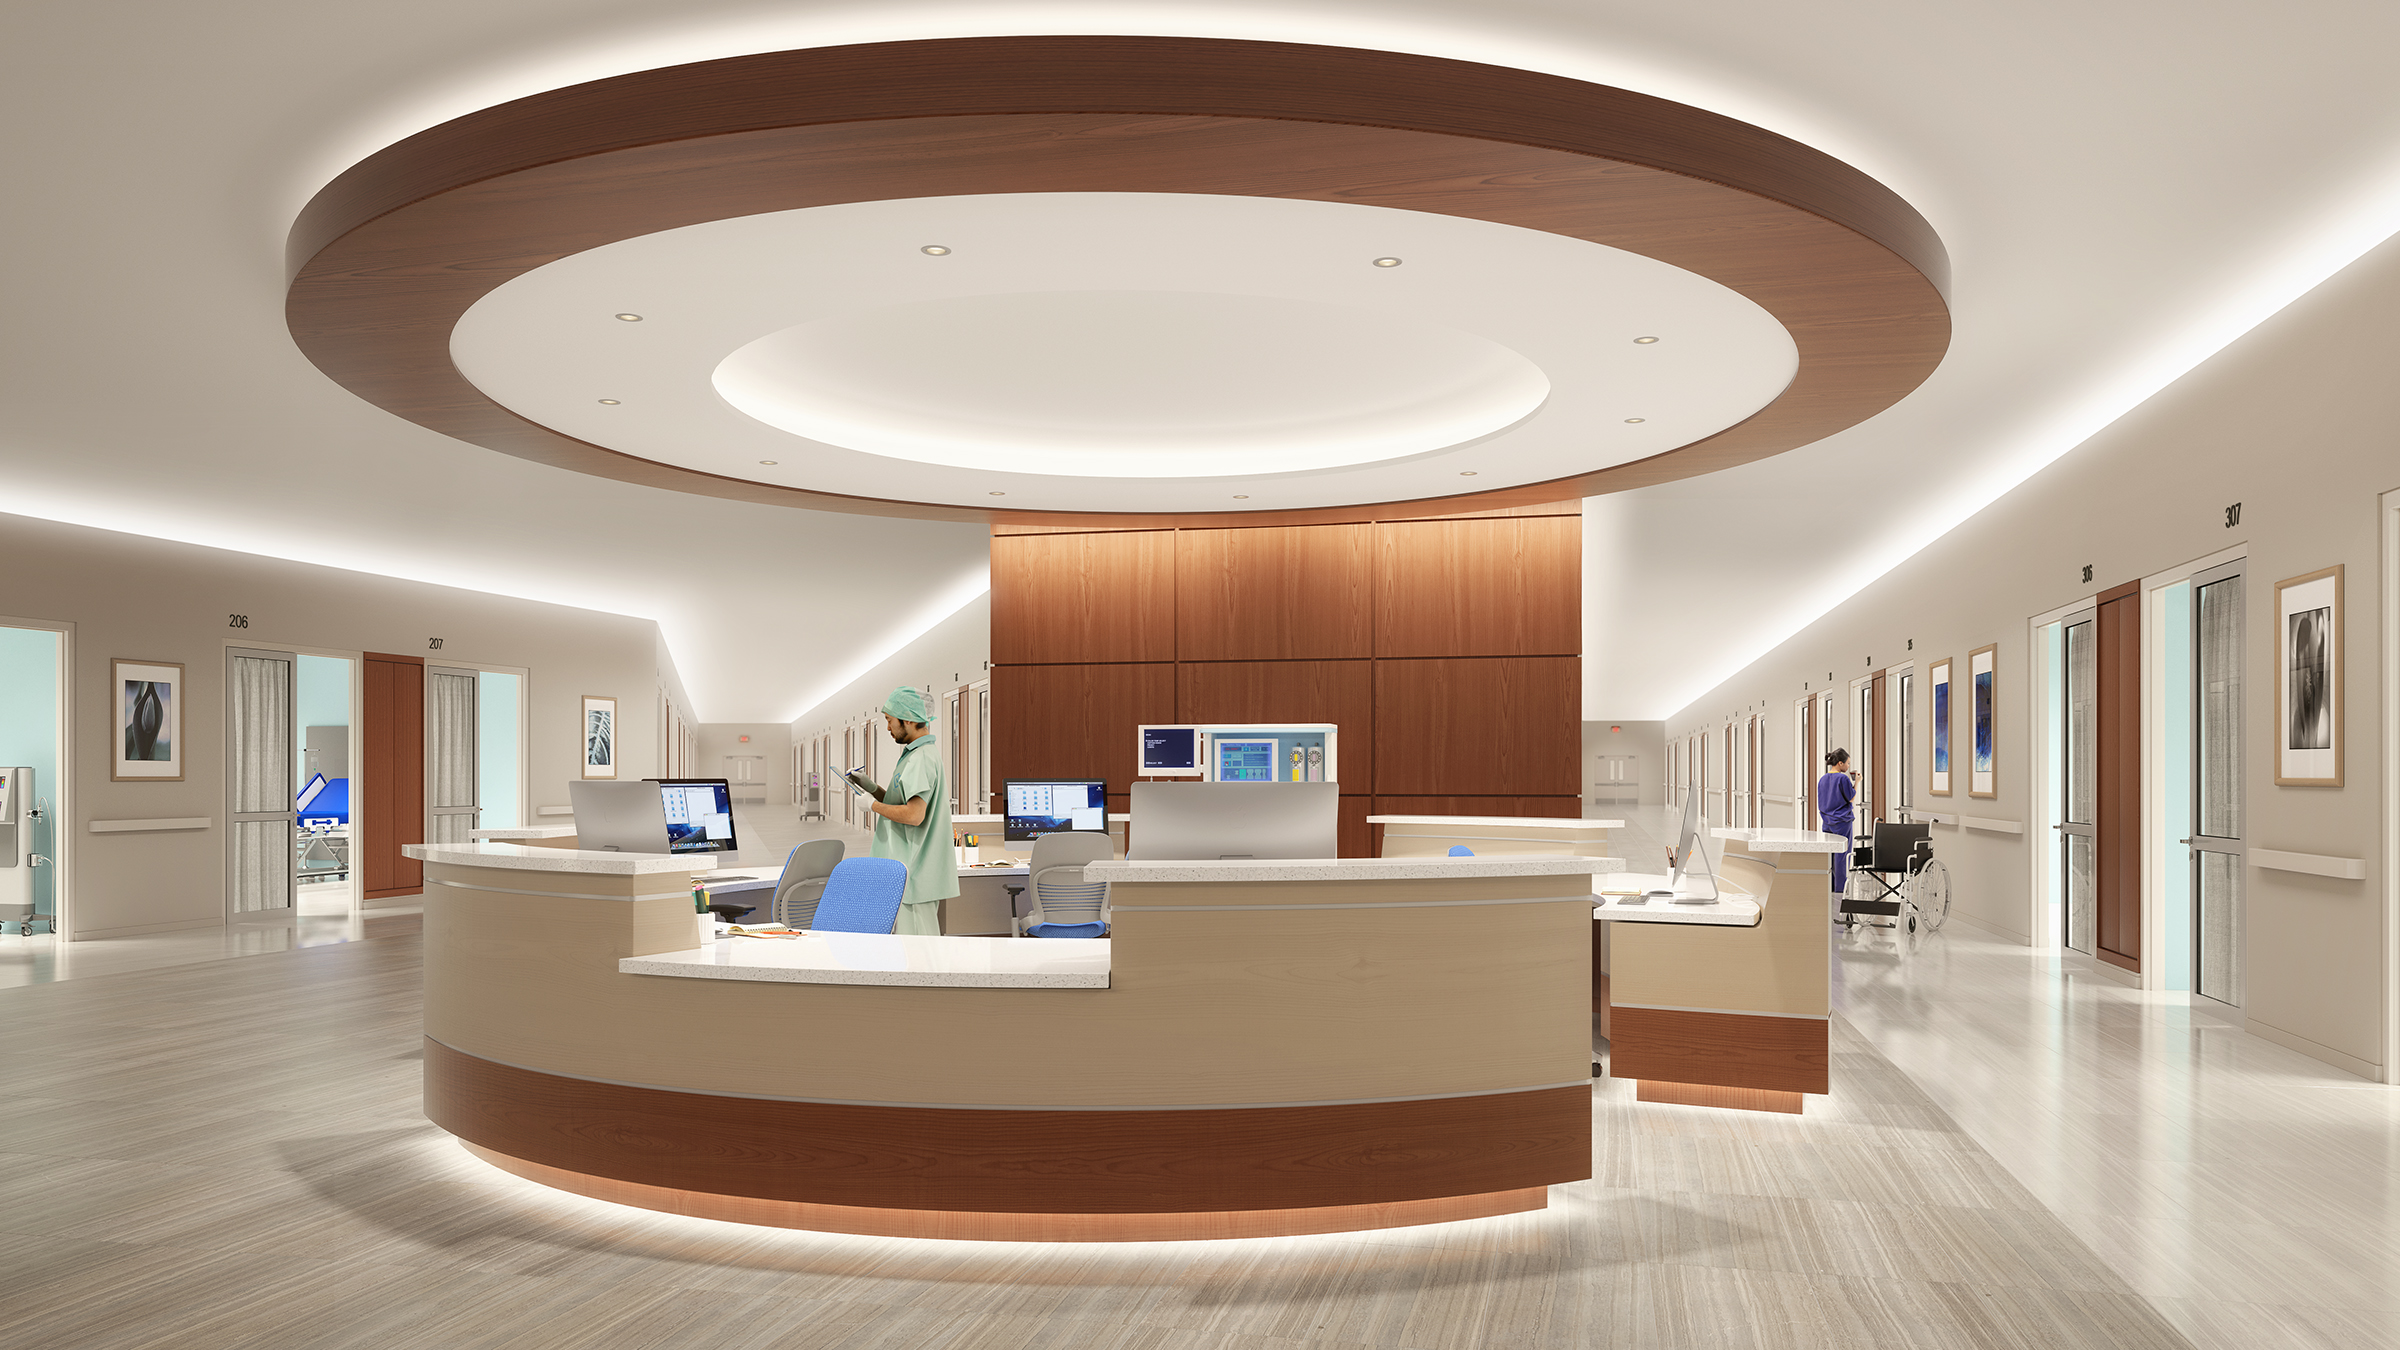 CoviO architectural cove luminaires provide functional cove lighting in applications like hospital corridors that replace traditional fixtures with a hidden light source without glare.